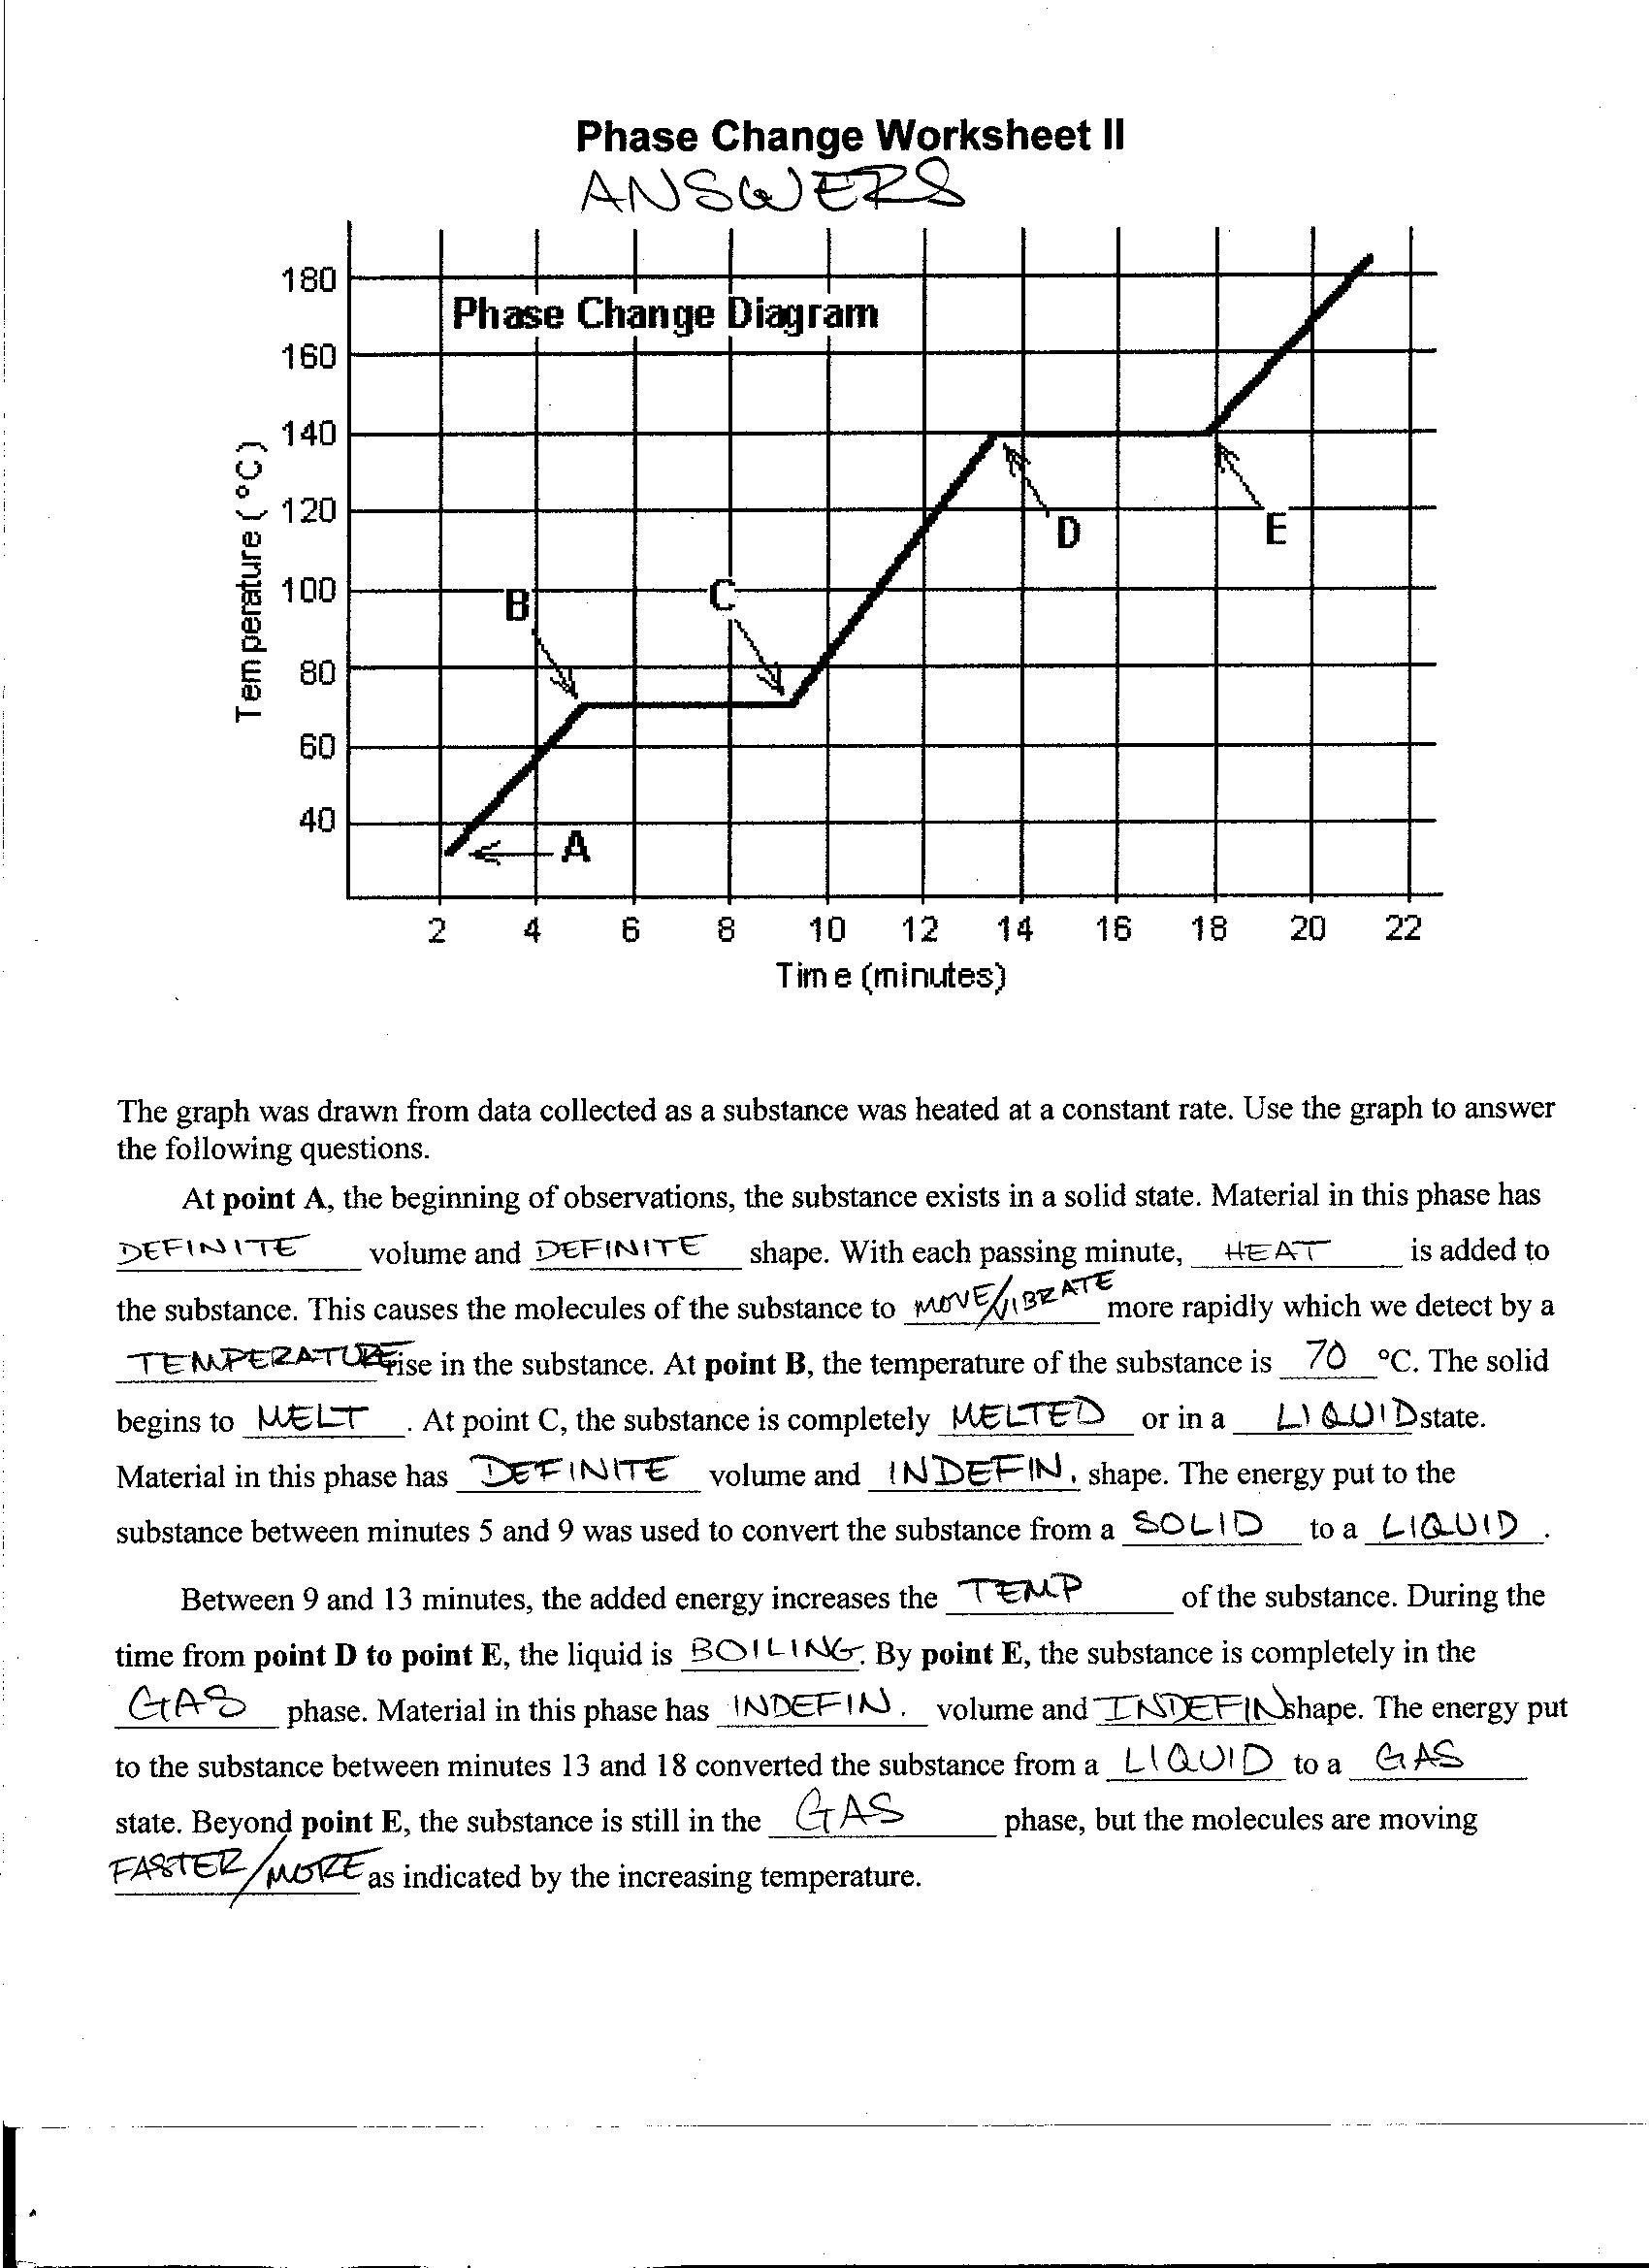 Phase Change Worksheet With Answers Free Worksheets Library ...